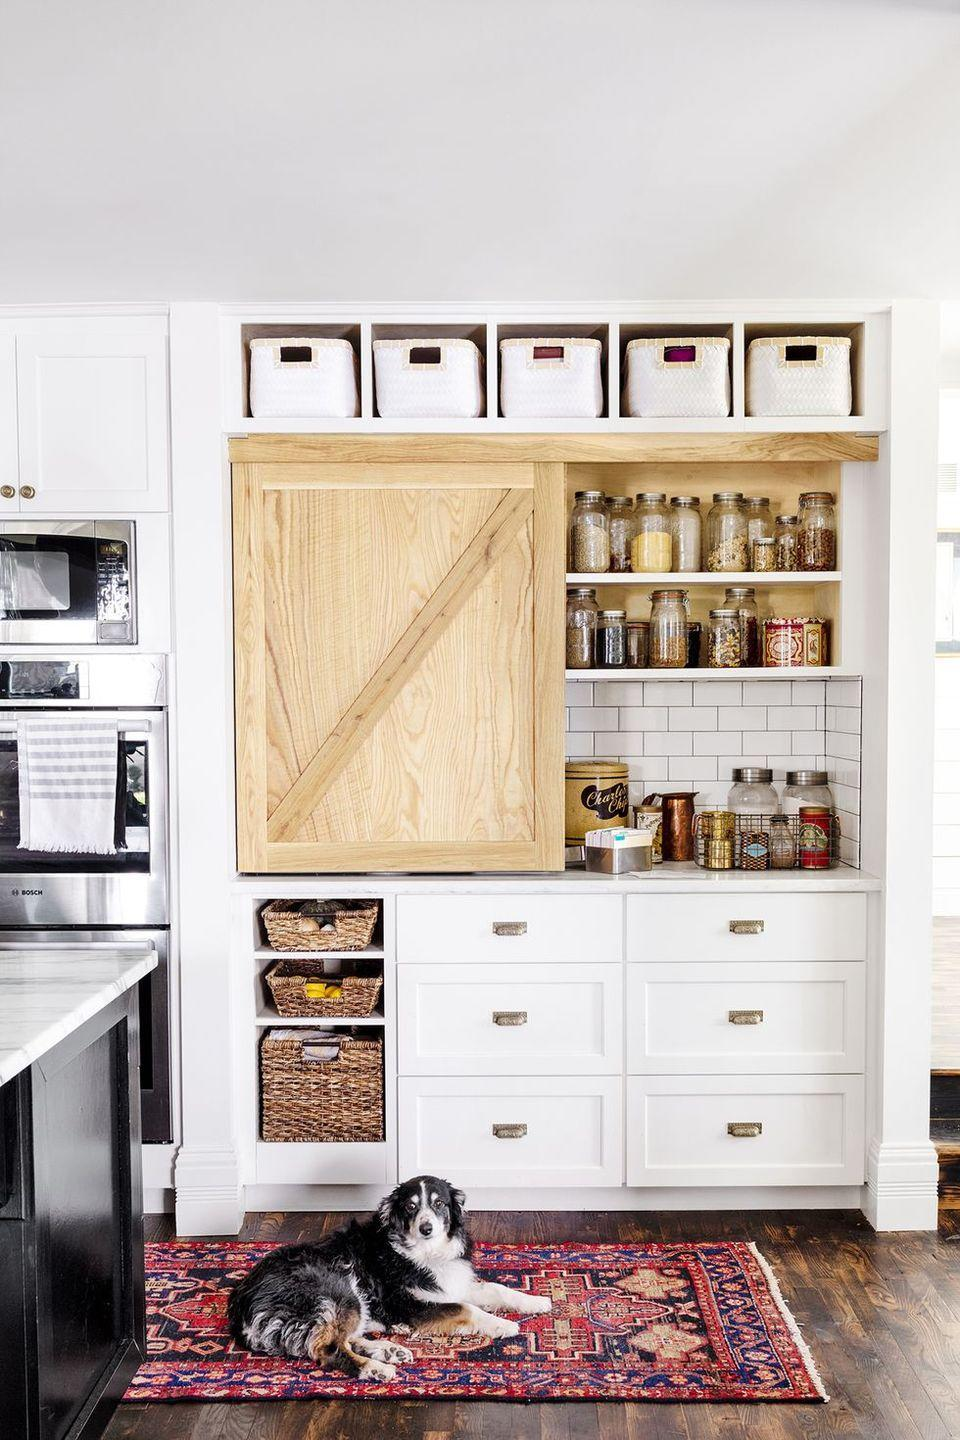 "<p>A combination of baskets and clear containers with lids can easily make your open <a href=""https://www.goodhousekeeping.com/home/organizing/g25560359/pantry-organization-ideas/"" rel=""nofollow noopener"" target=""_blank"" data-ylk=""slk:pantry look more polished"" class=""link rapid-noclick-resp"">pantry look more polished</a>. <br></p>"